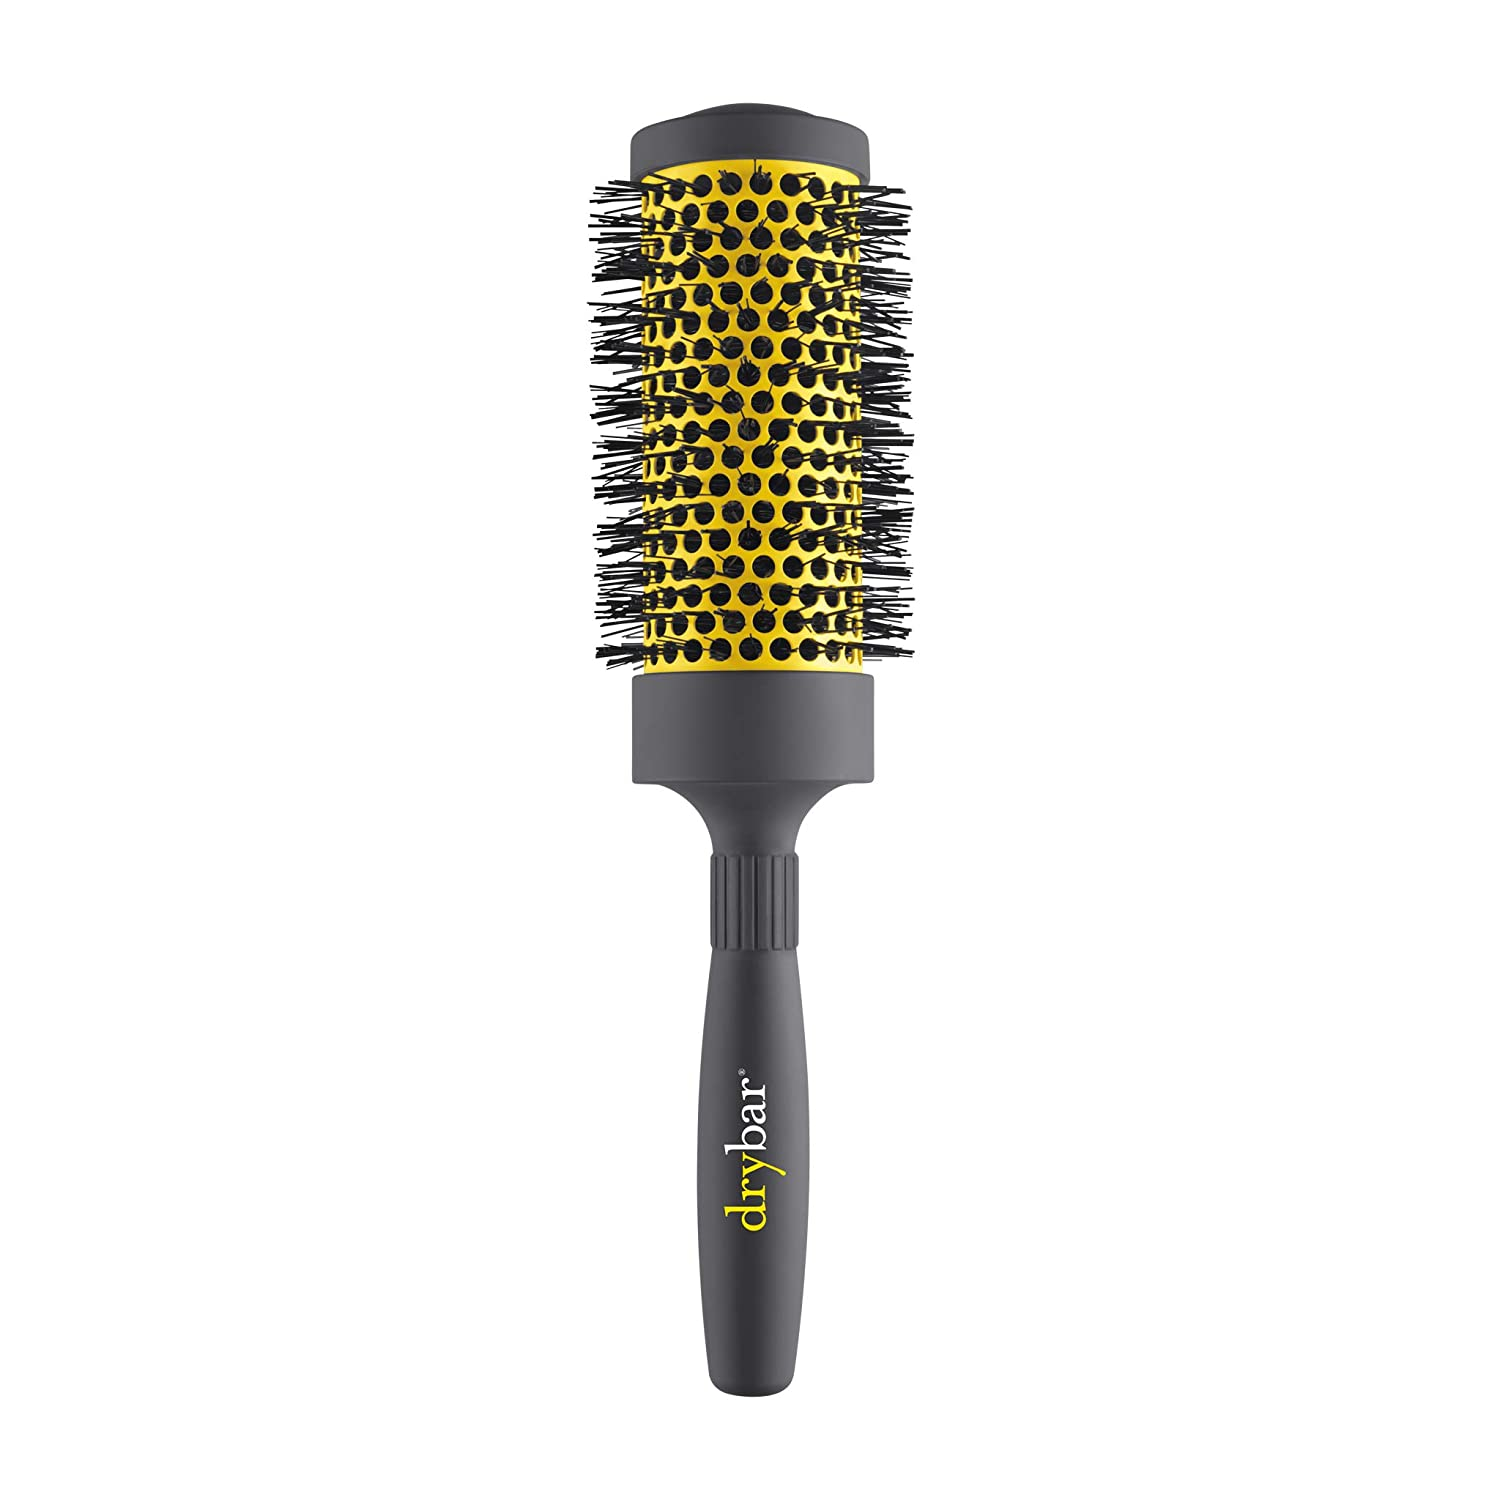 Best Overal: Drybar Full Pint Medium Round Ceramic Brush